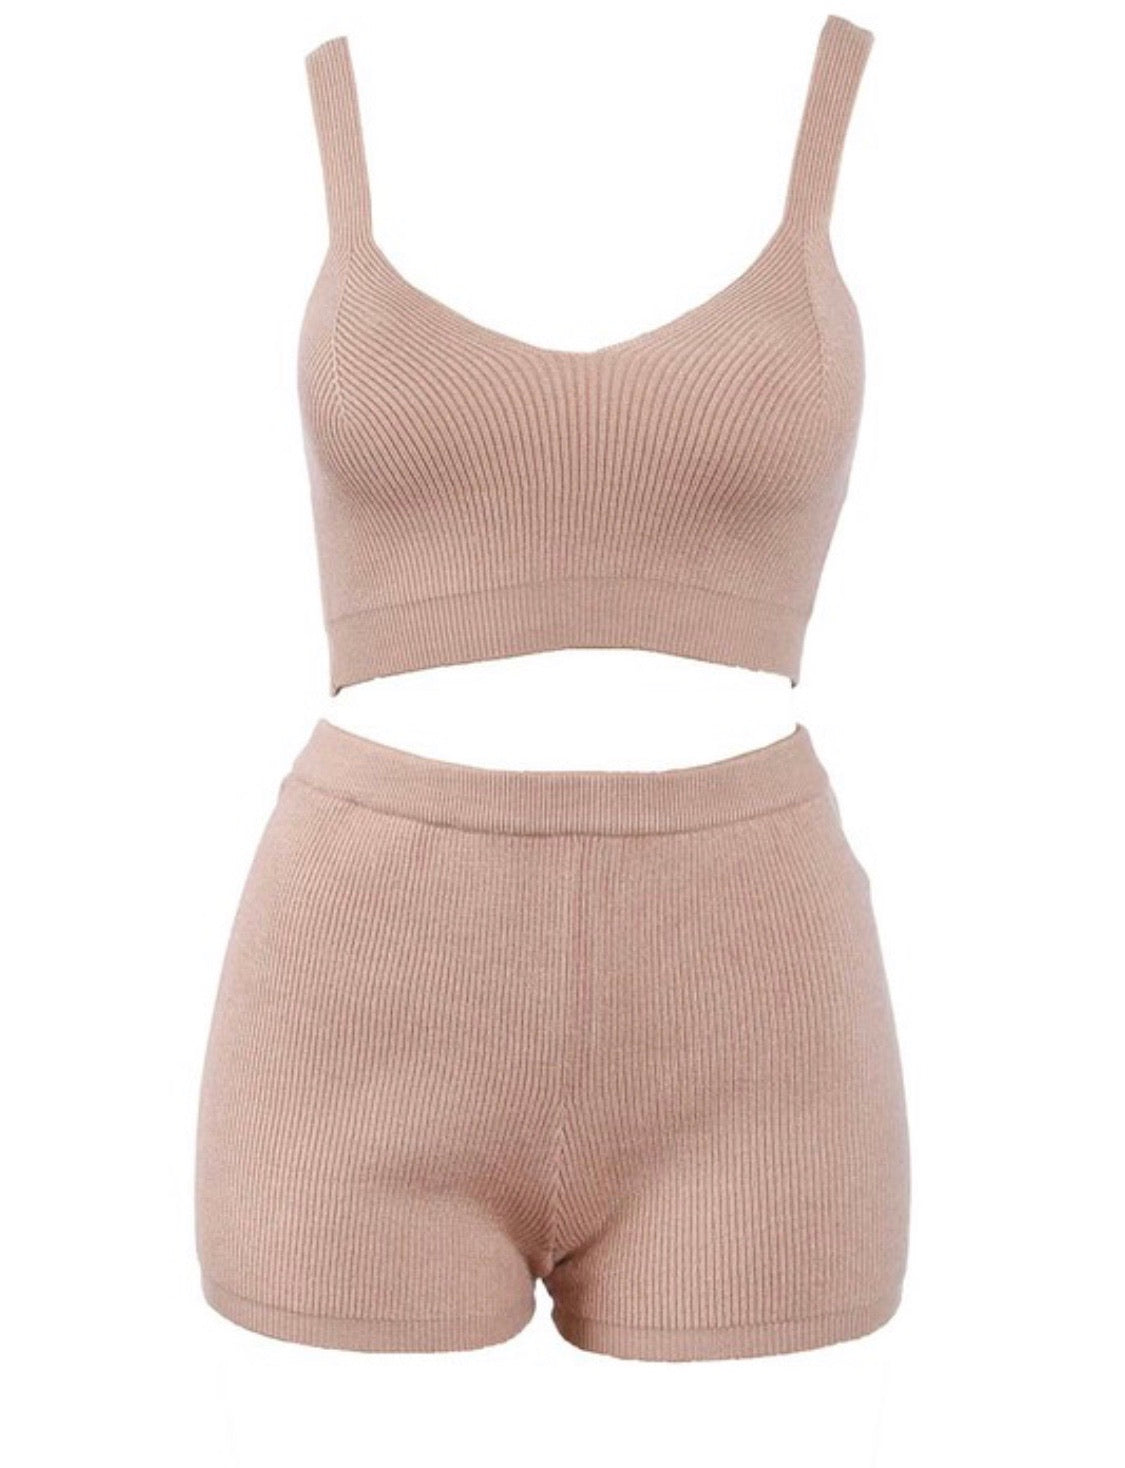 Taupe  crop top and  high waist shorts cozy lounge set with thin straps. Item is very stretchy and comfortable.   This two piece set is made of  30%Viscose 20%Acrylic 50% Nylon